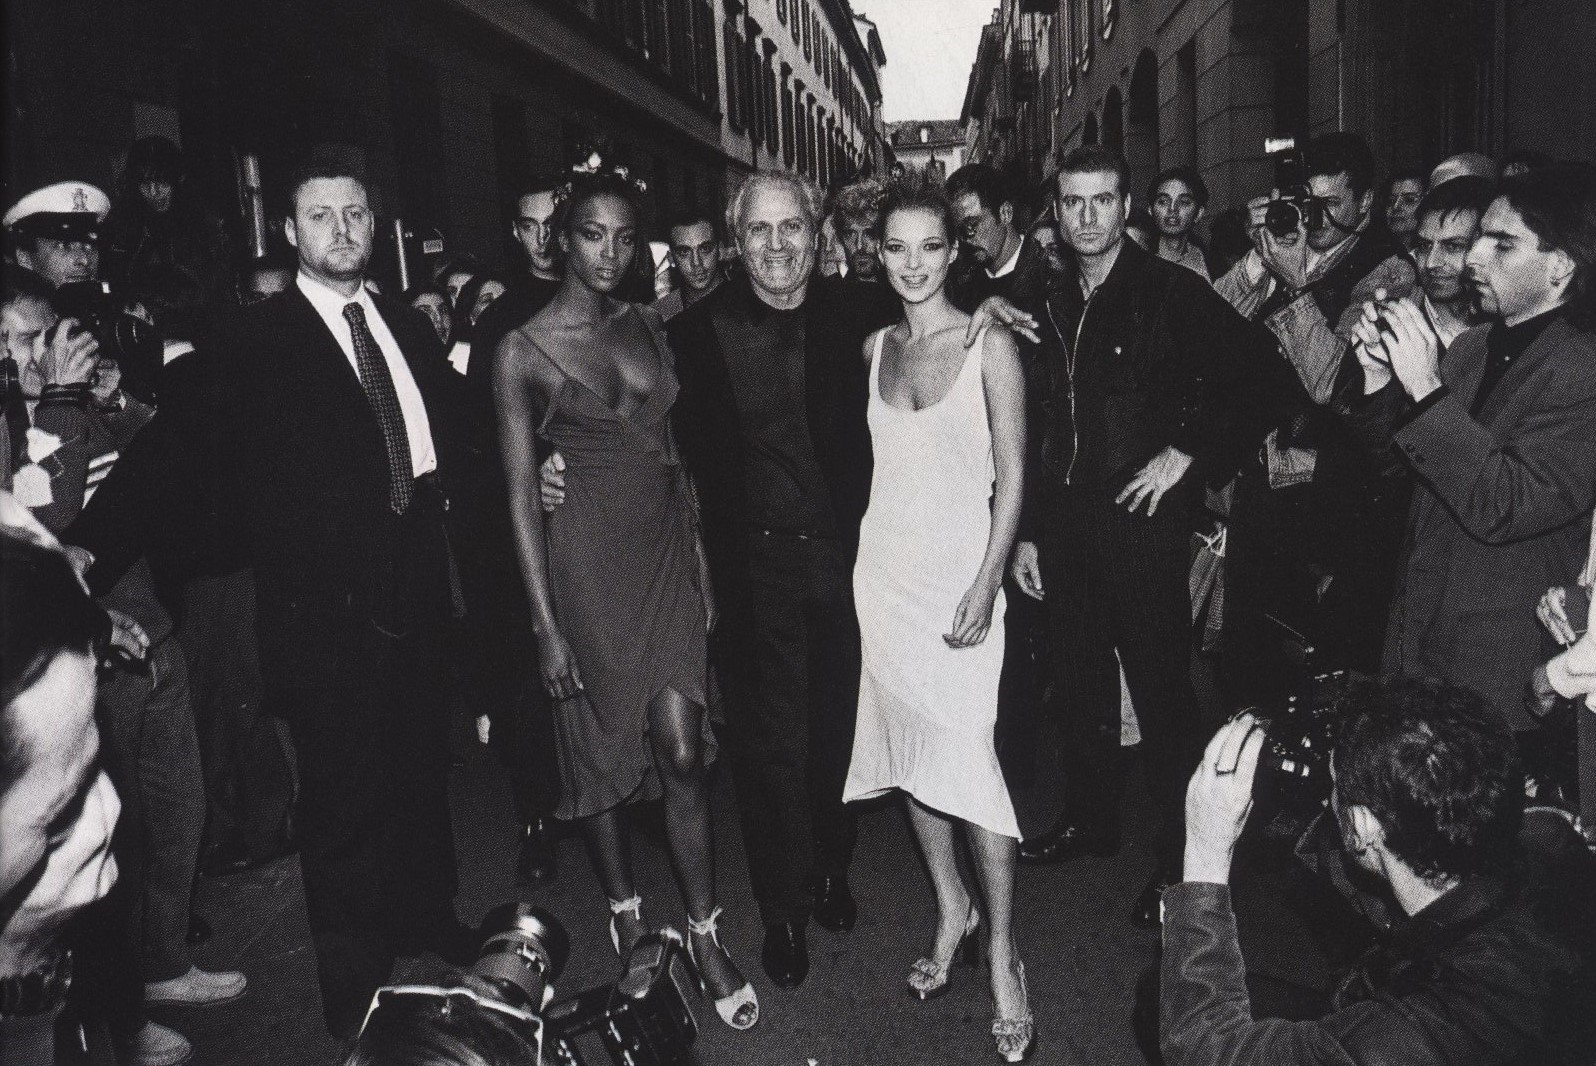 THE HAPPENING NAOMI CAMPBELL, GIANNI VERSACE AND KATE MOSS VIA GESU' MILAN PHOTOGRAPHY PATRICK DEMARCHELIER HARPER'S BAZAAR JANUAY 1997